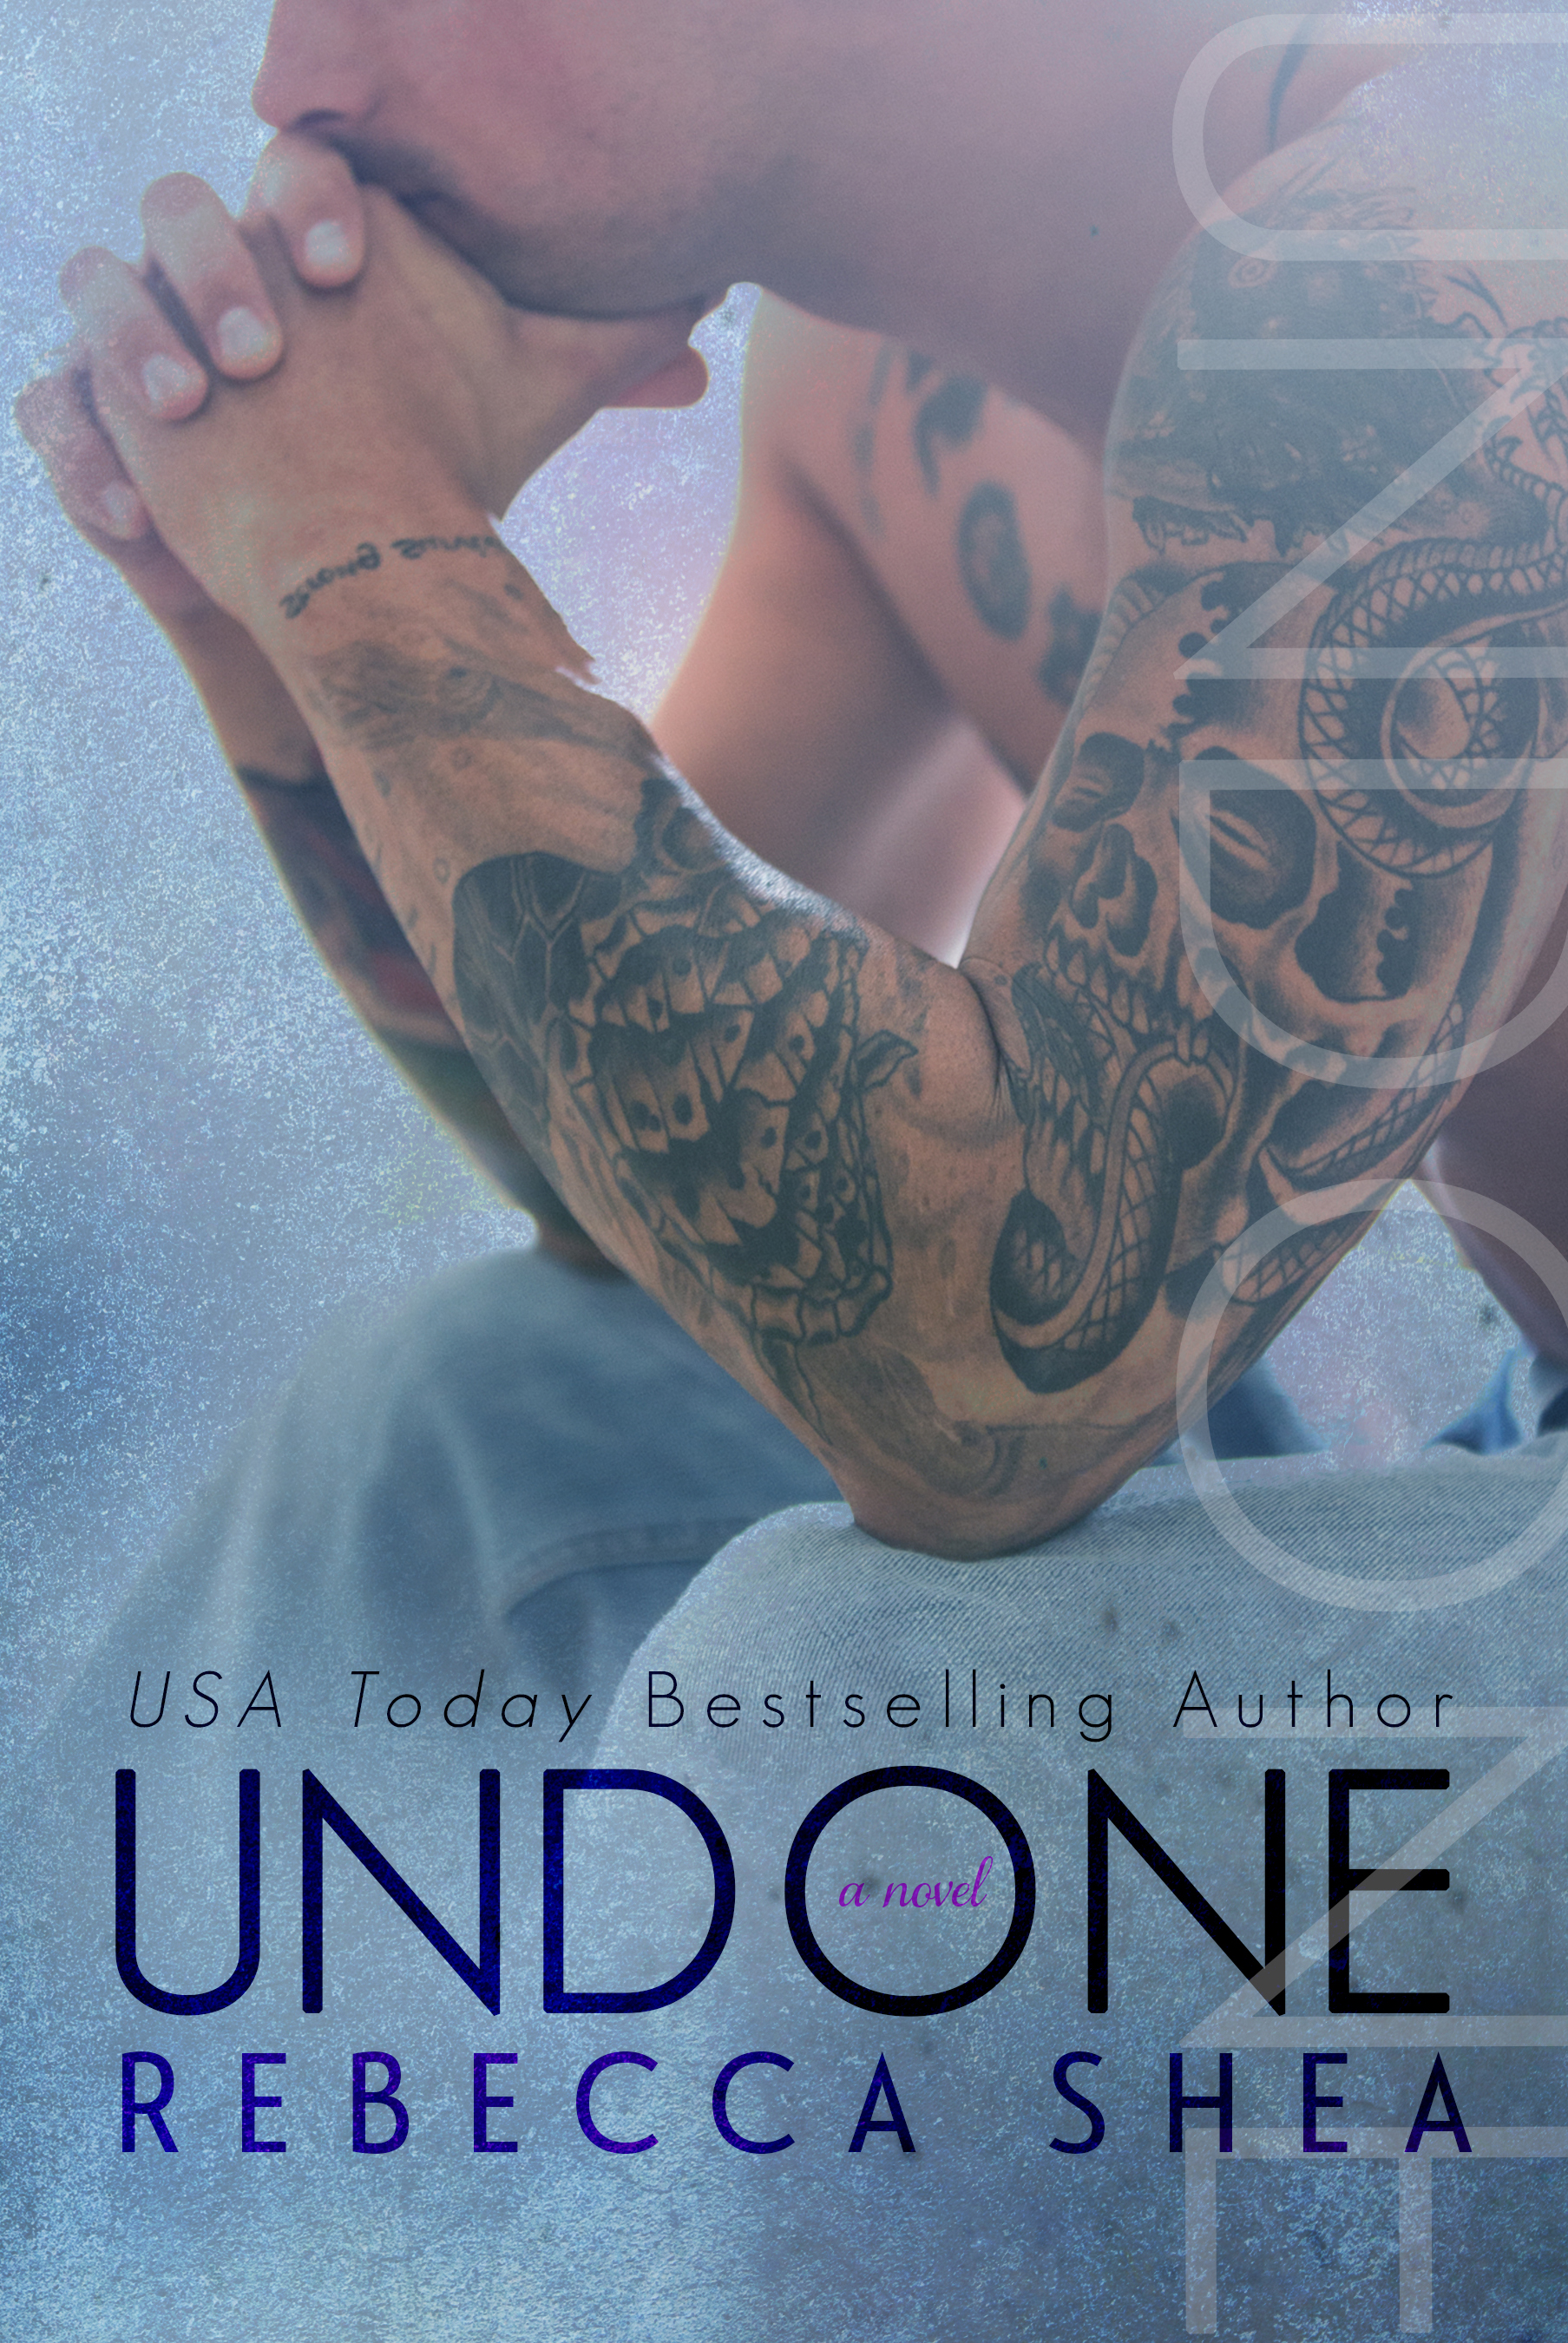 http://www.amazon.com/Undone-Rebecca-Shea-ebook/dp/B00IJLLTNO/ref=sr_1_1?s=books&ie=UTF8&qid=1395161489&sr=1-1&keywords=undone+rebecca+shea